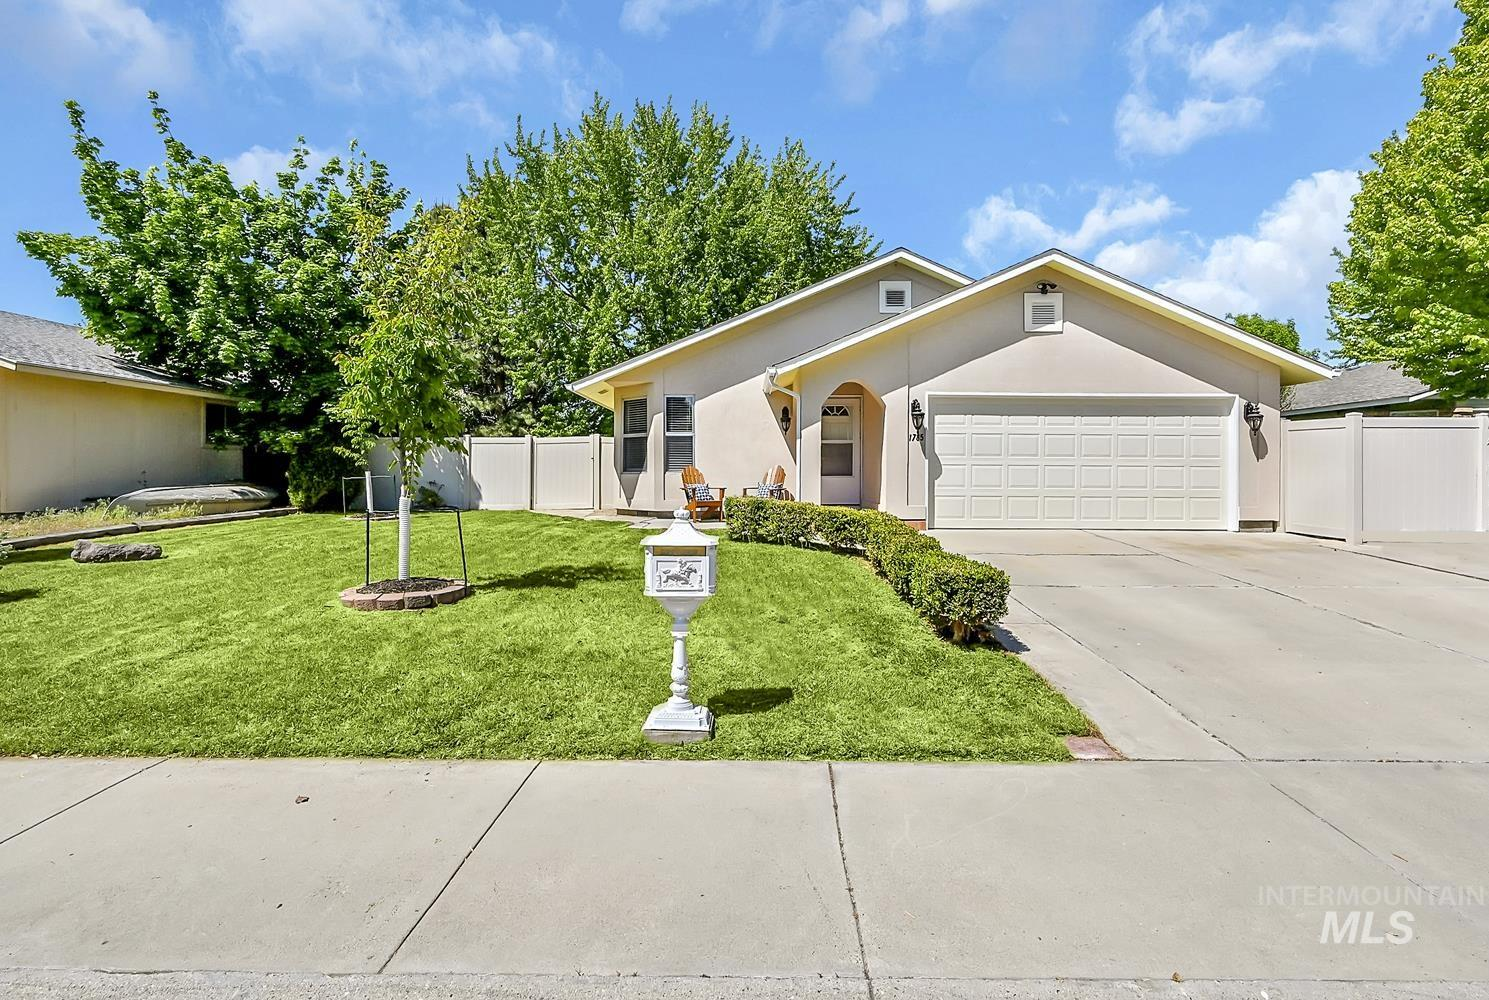 1785 N Teare Ave Property Photo - Meridian, ID real estate listing